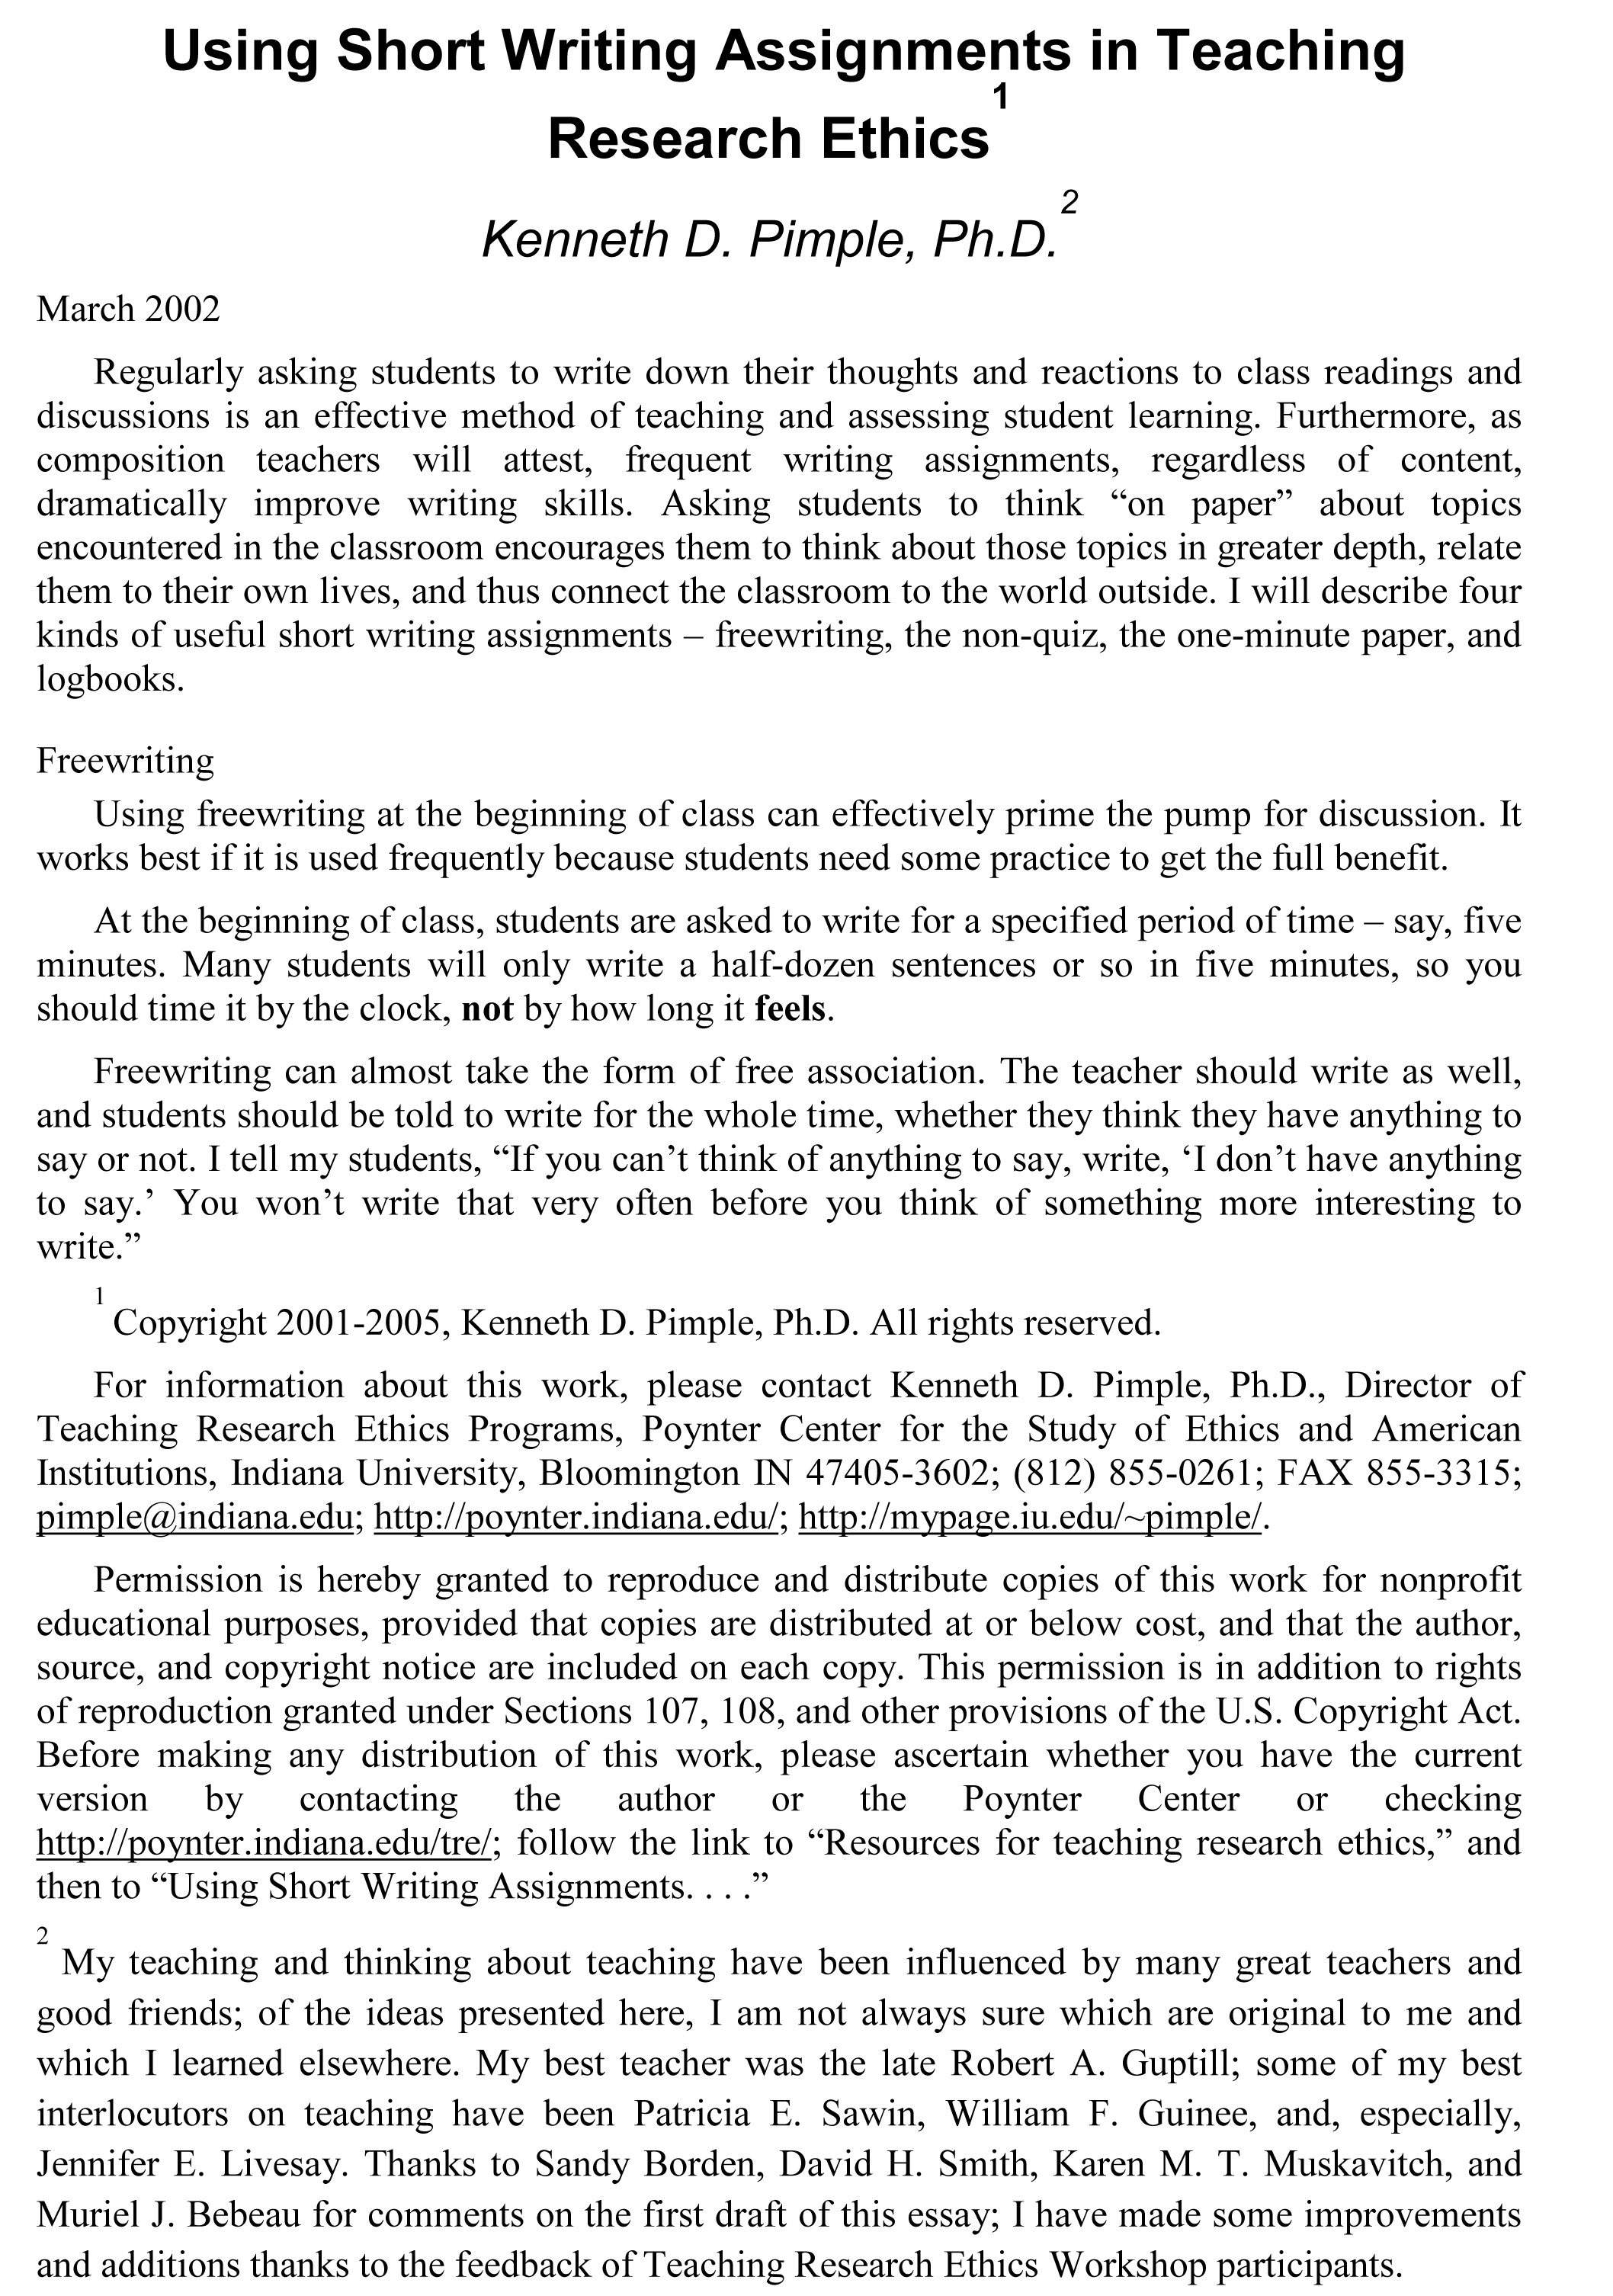 008 Essay Example Sample Teaching College Essays About Exceptional Music Country Rock Full